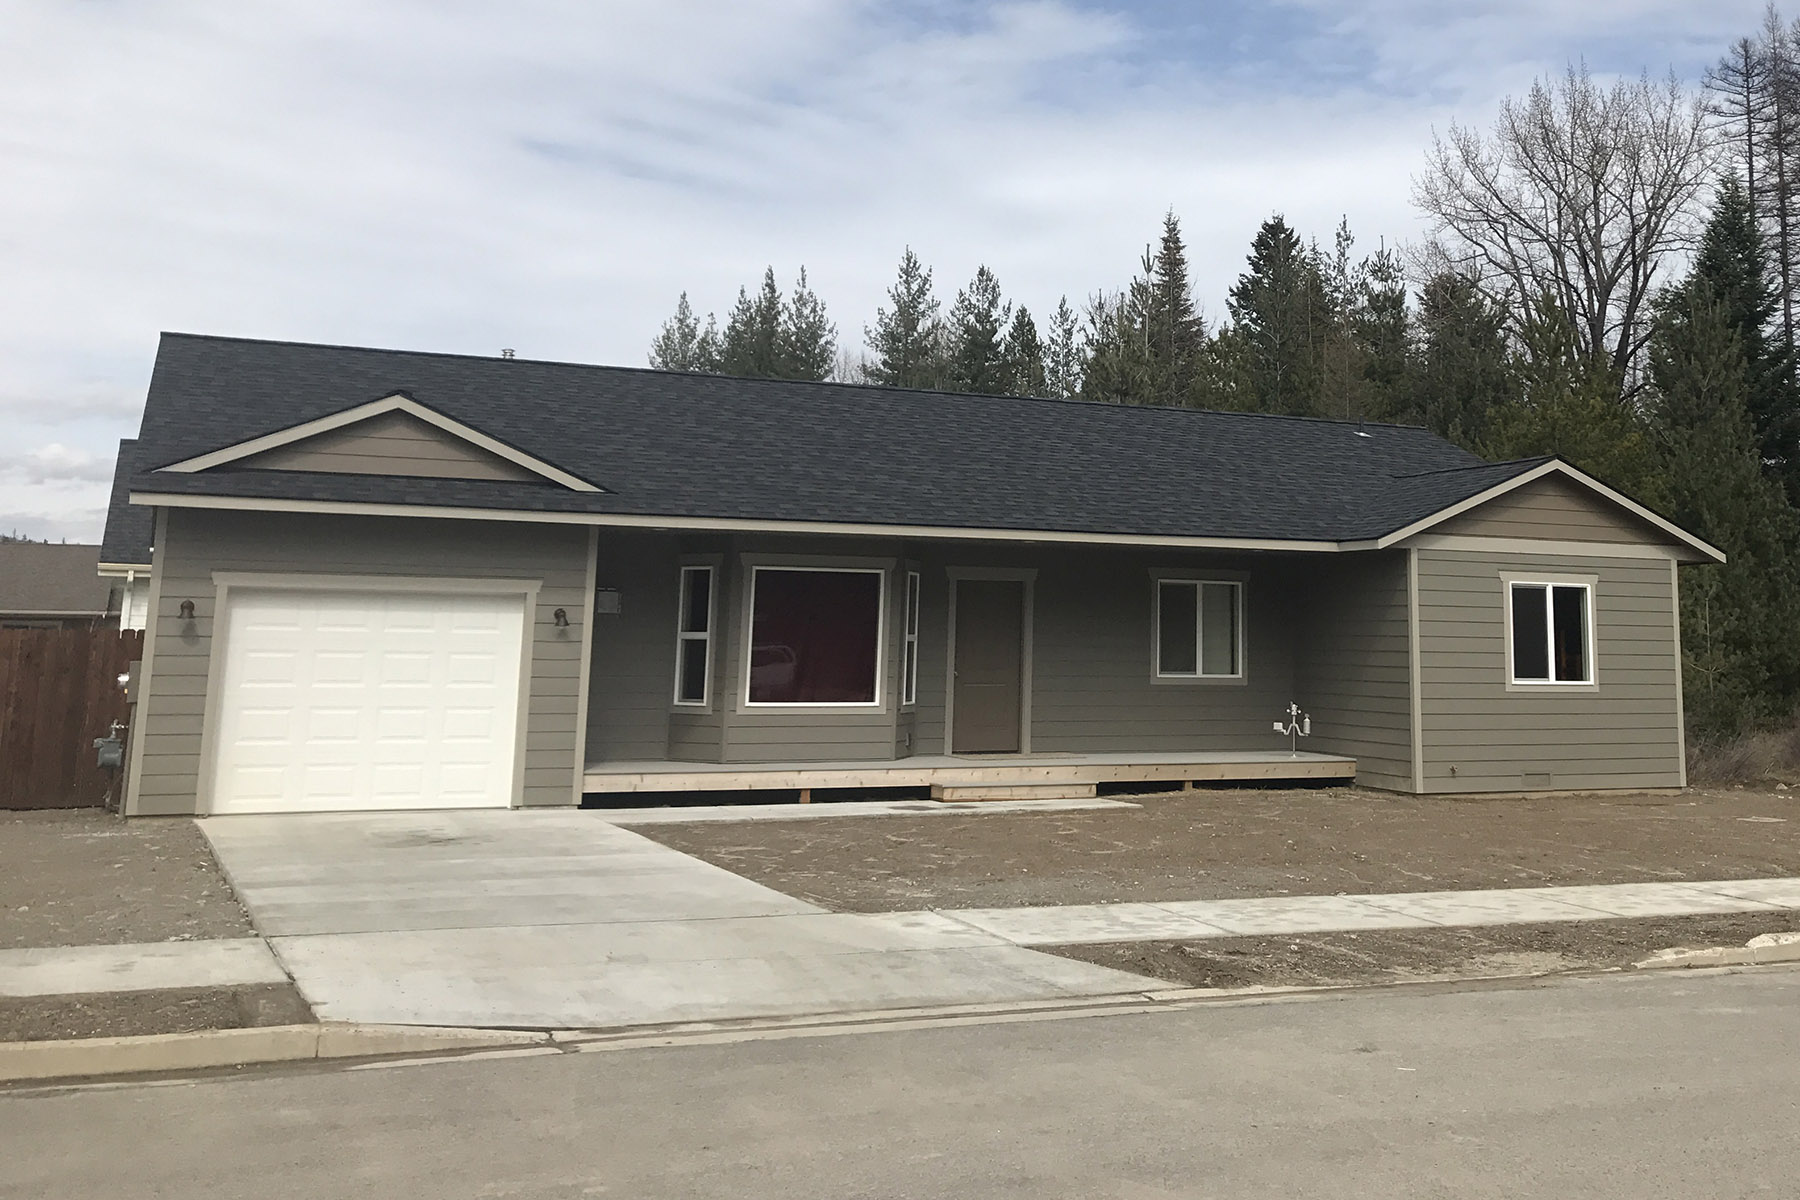 Single Family Home for Sale at Brand new one level home in Sandpoint 310 Ashlin Ct Sandpoint, Idaho, 83864 United States